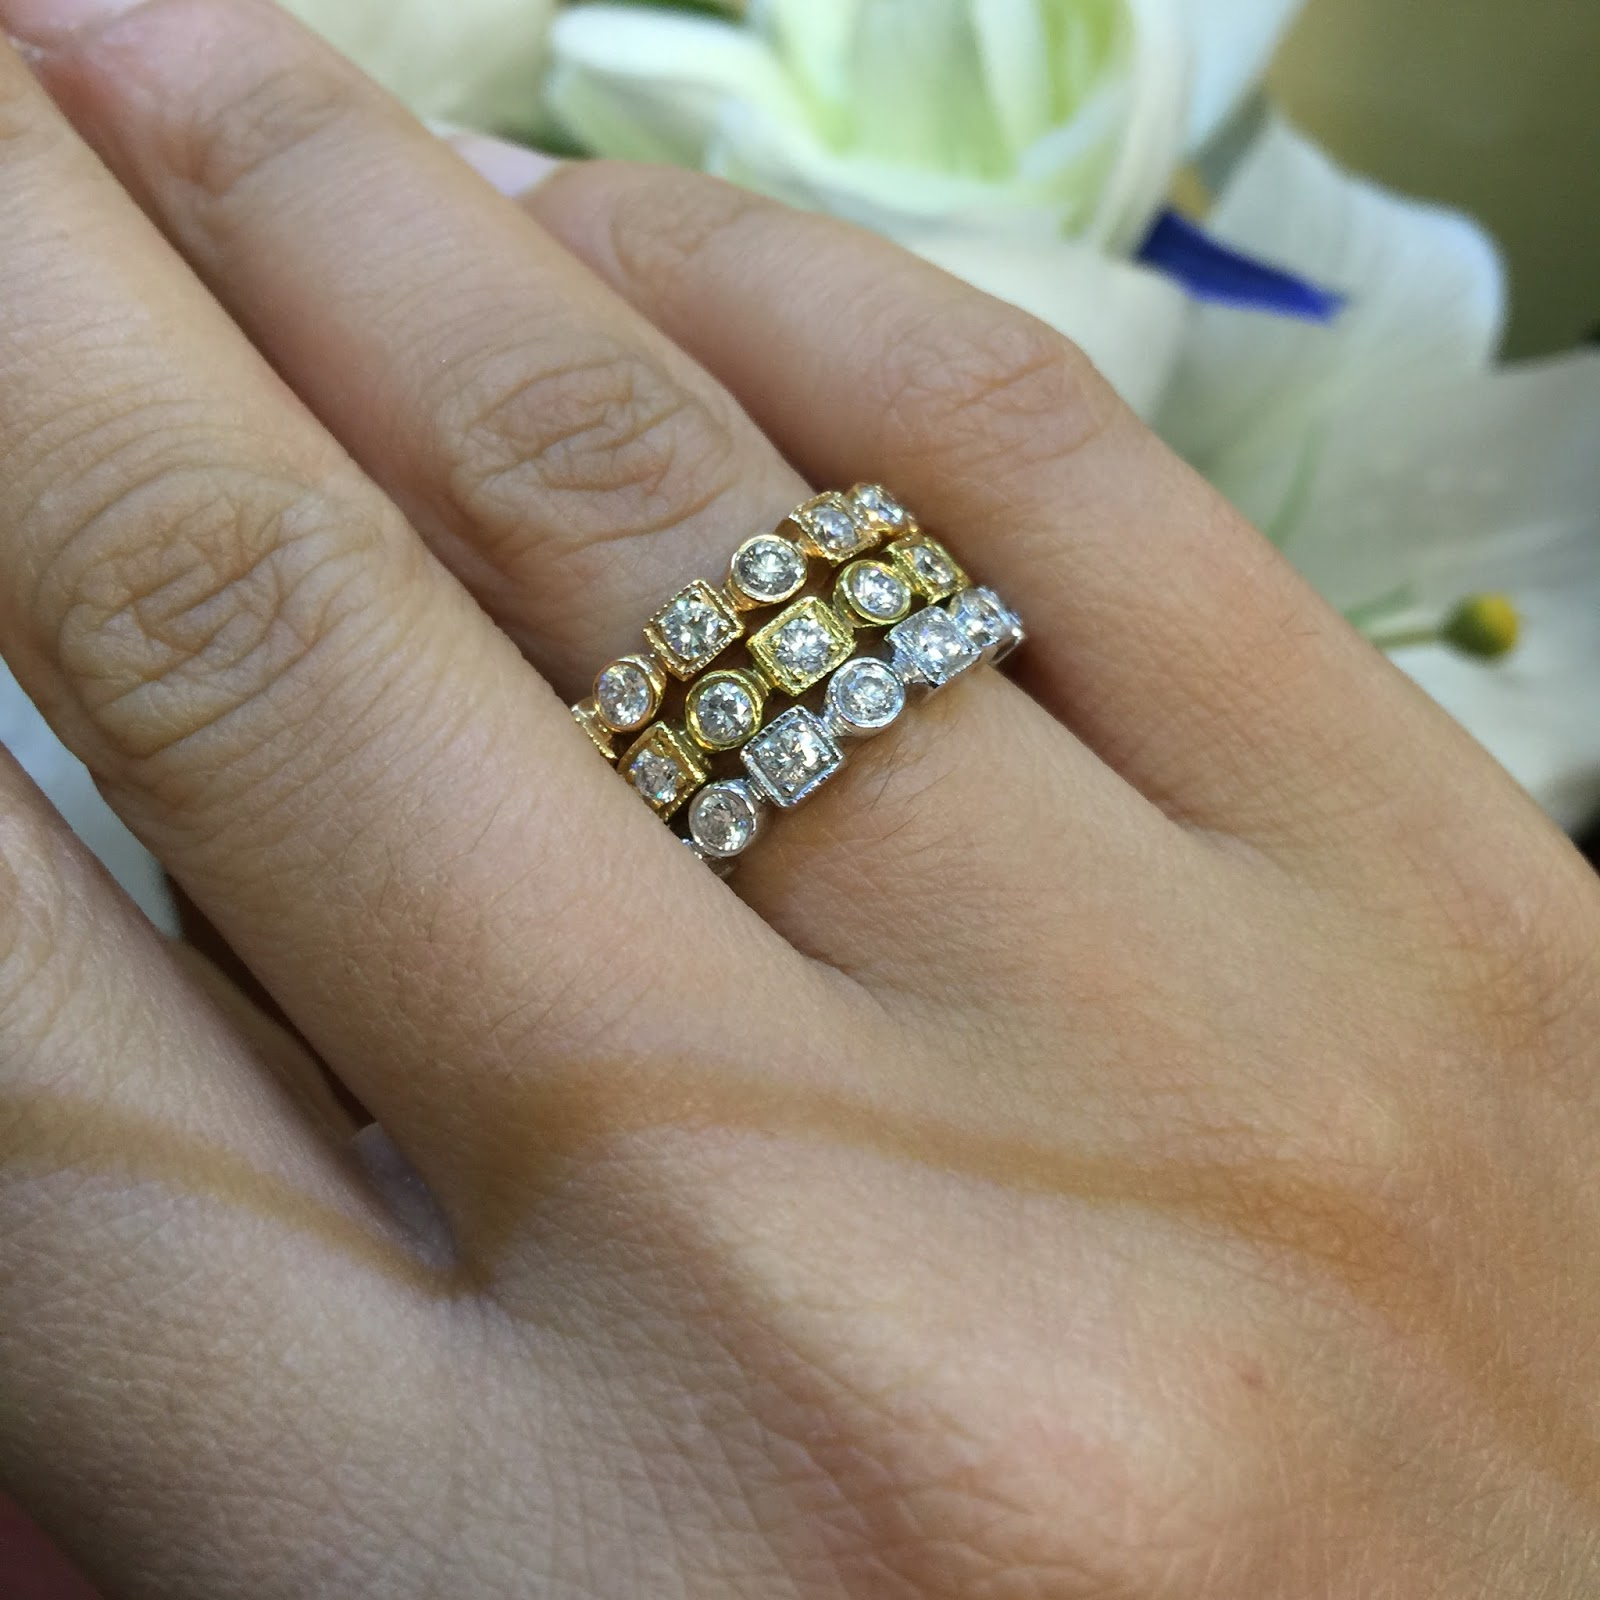 rings gold miligrain ring stackable color h clarity g of ct copy white braided diamond products wedding